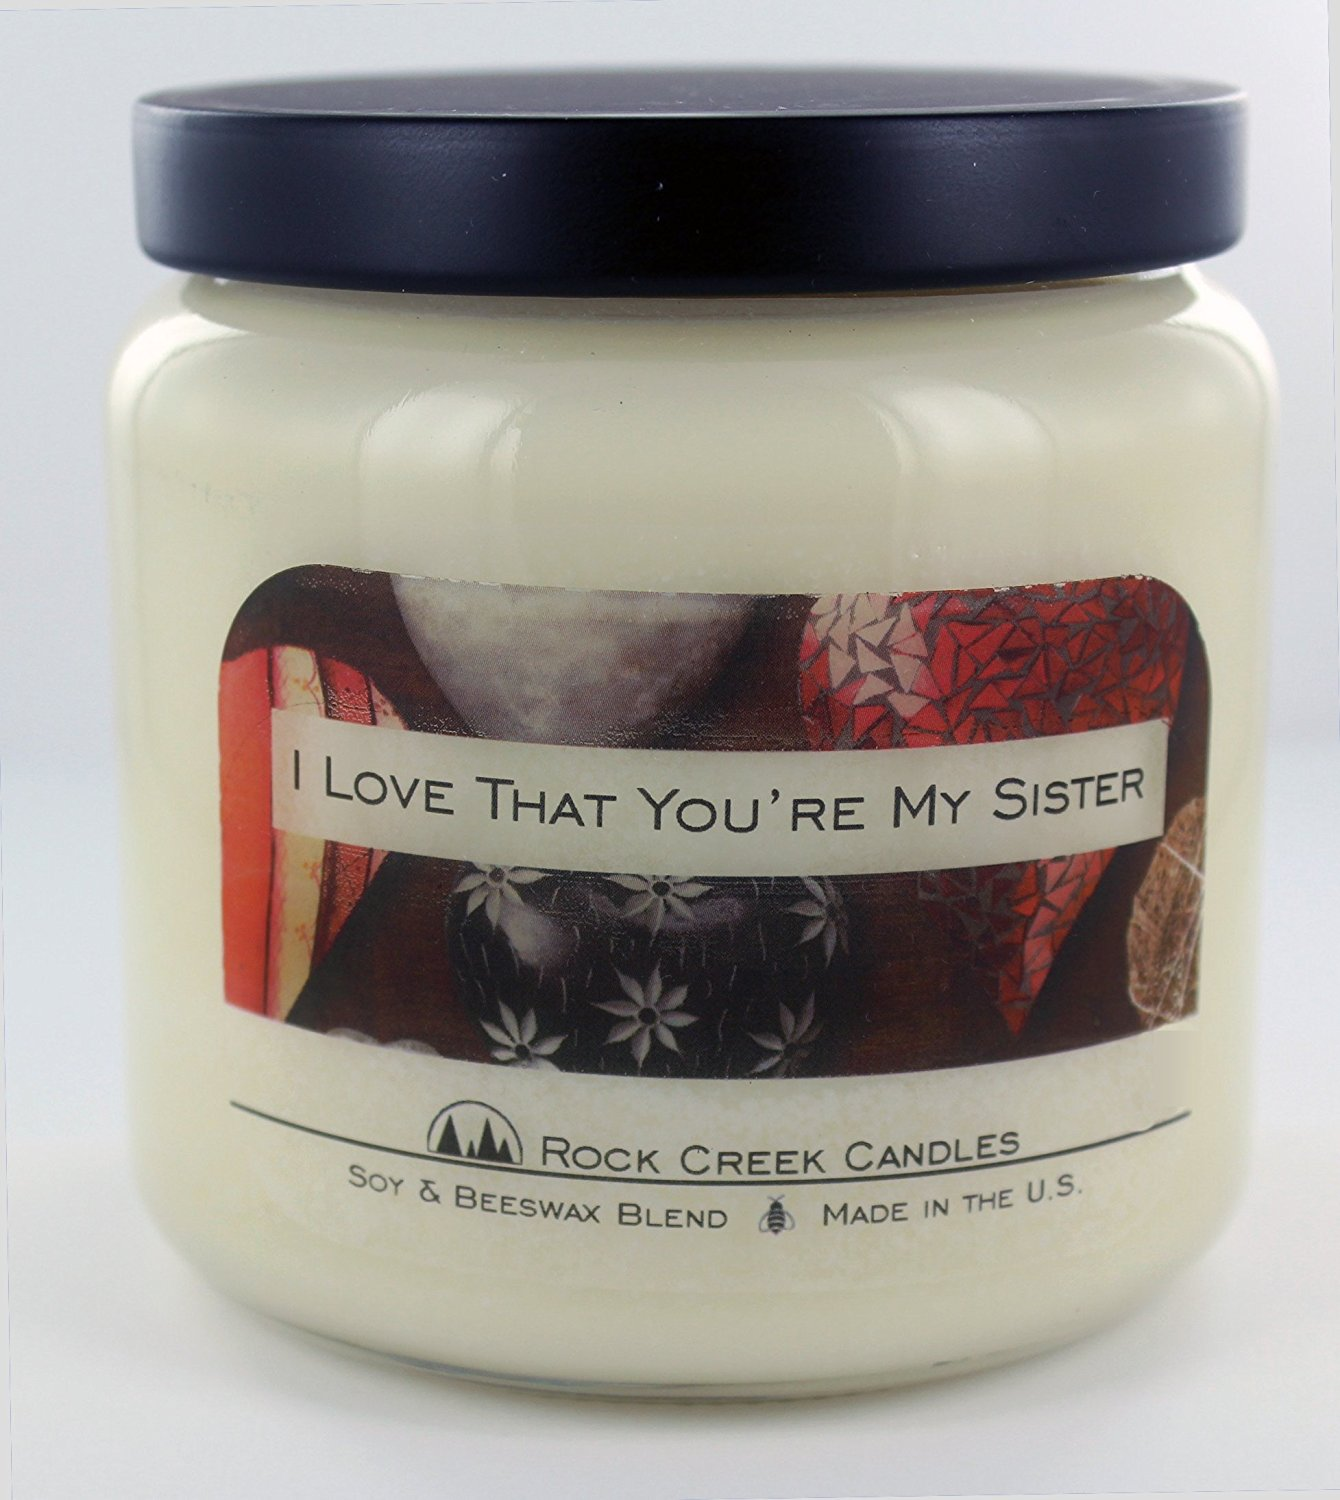 I Love That You're My Sister Cinnamon Spice 16oz Soy Candle